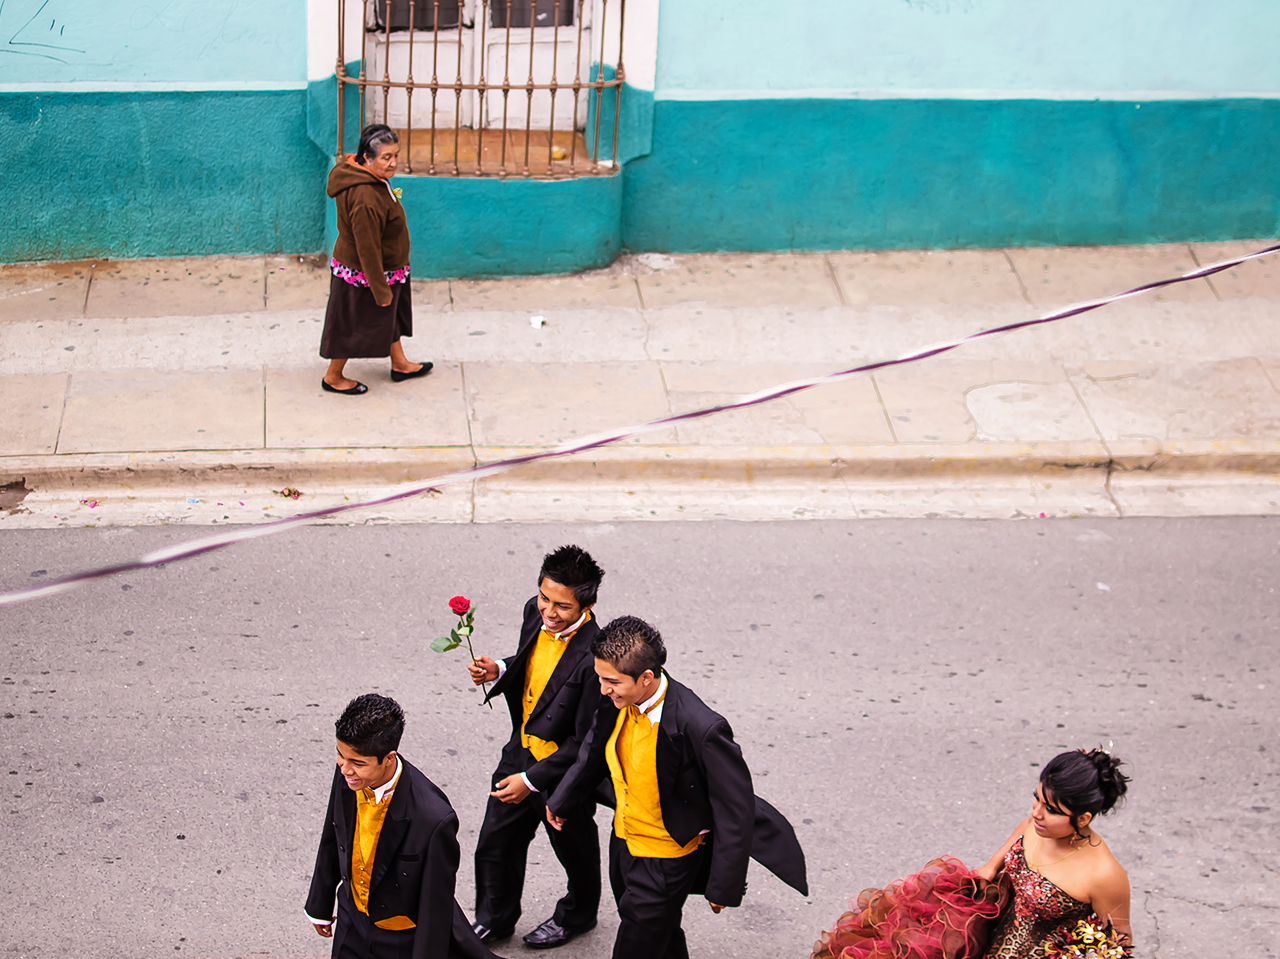 oaxaca_mexico_street_photography3